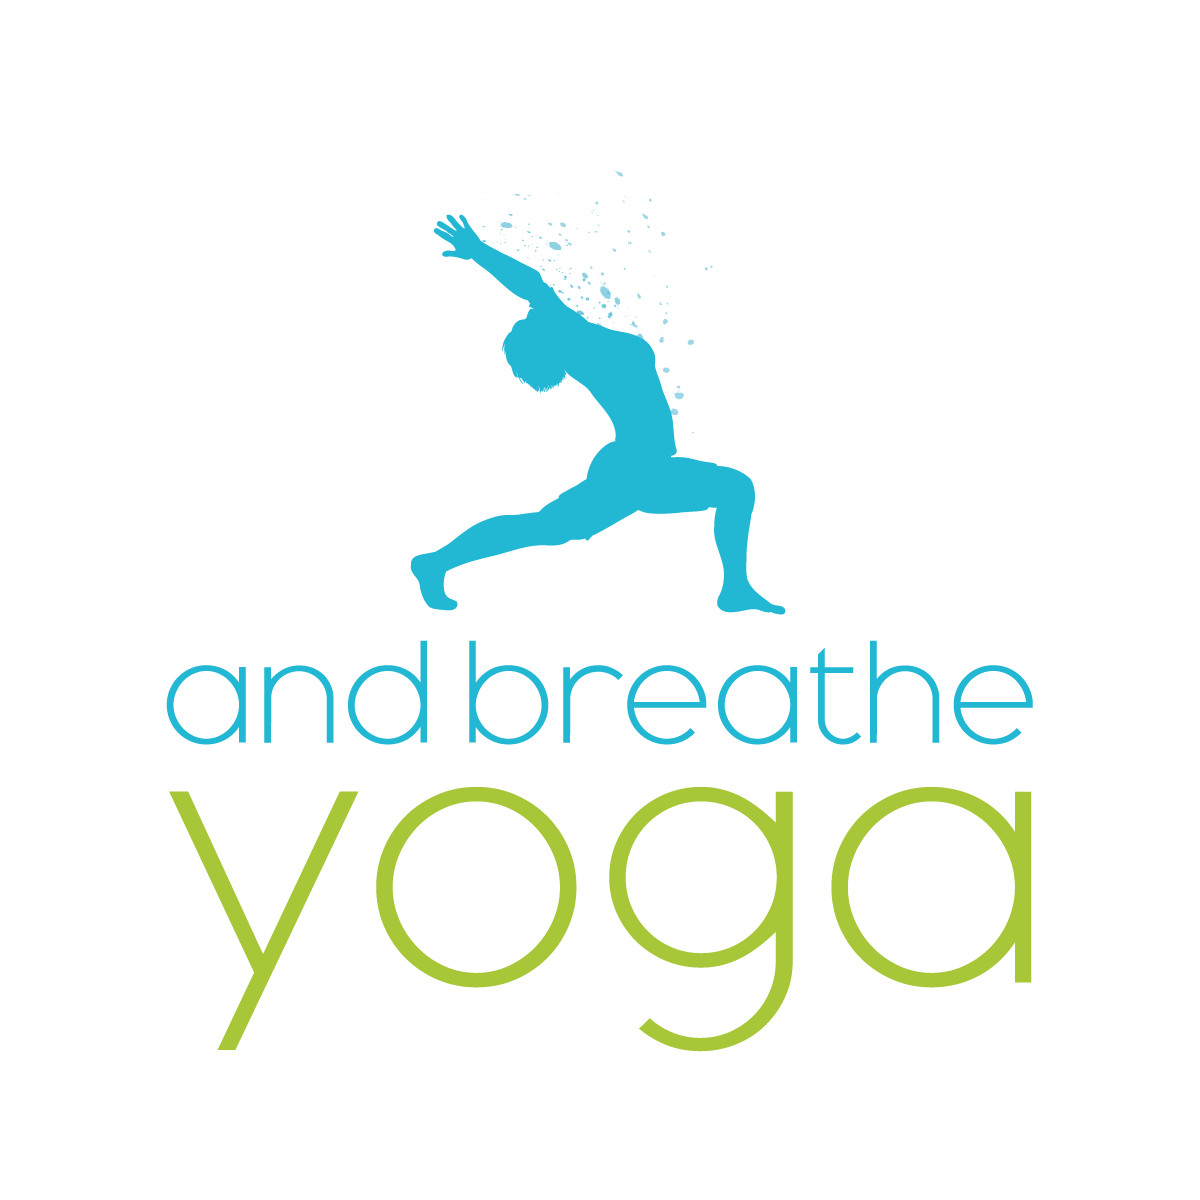 and breathe yoga logo